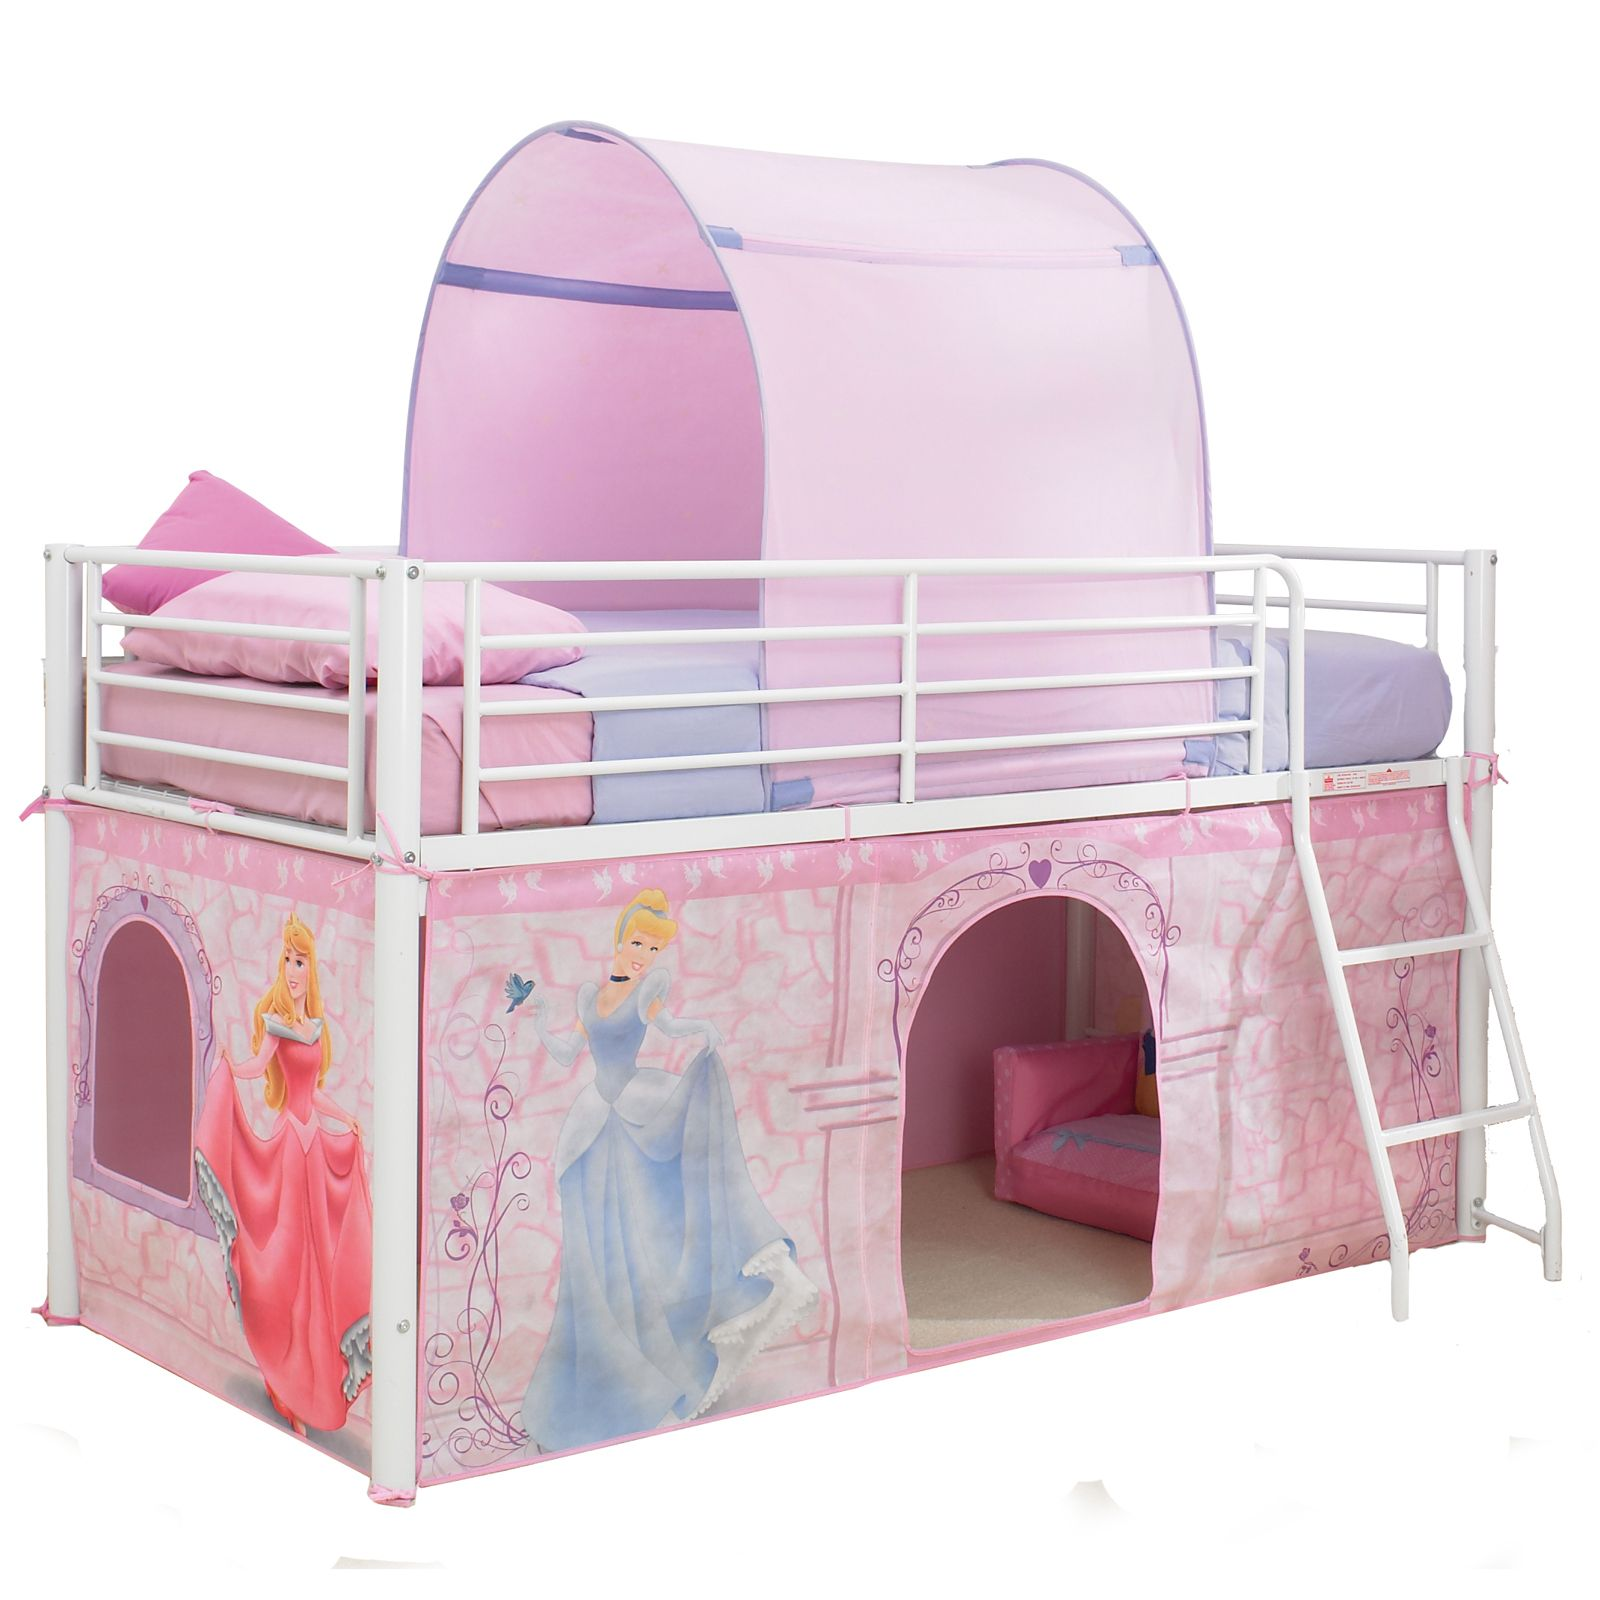 disney princess mid sleeper cabin bed tent new 100 official ebay. Black Bedroom Furniture Sets. Home Design Ideas